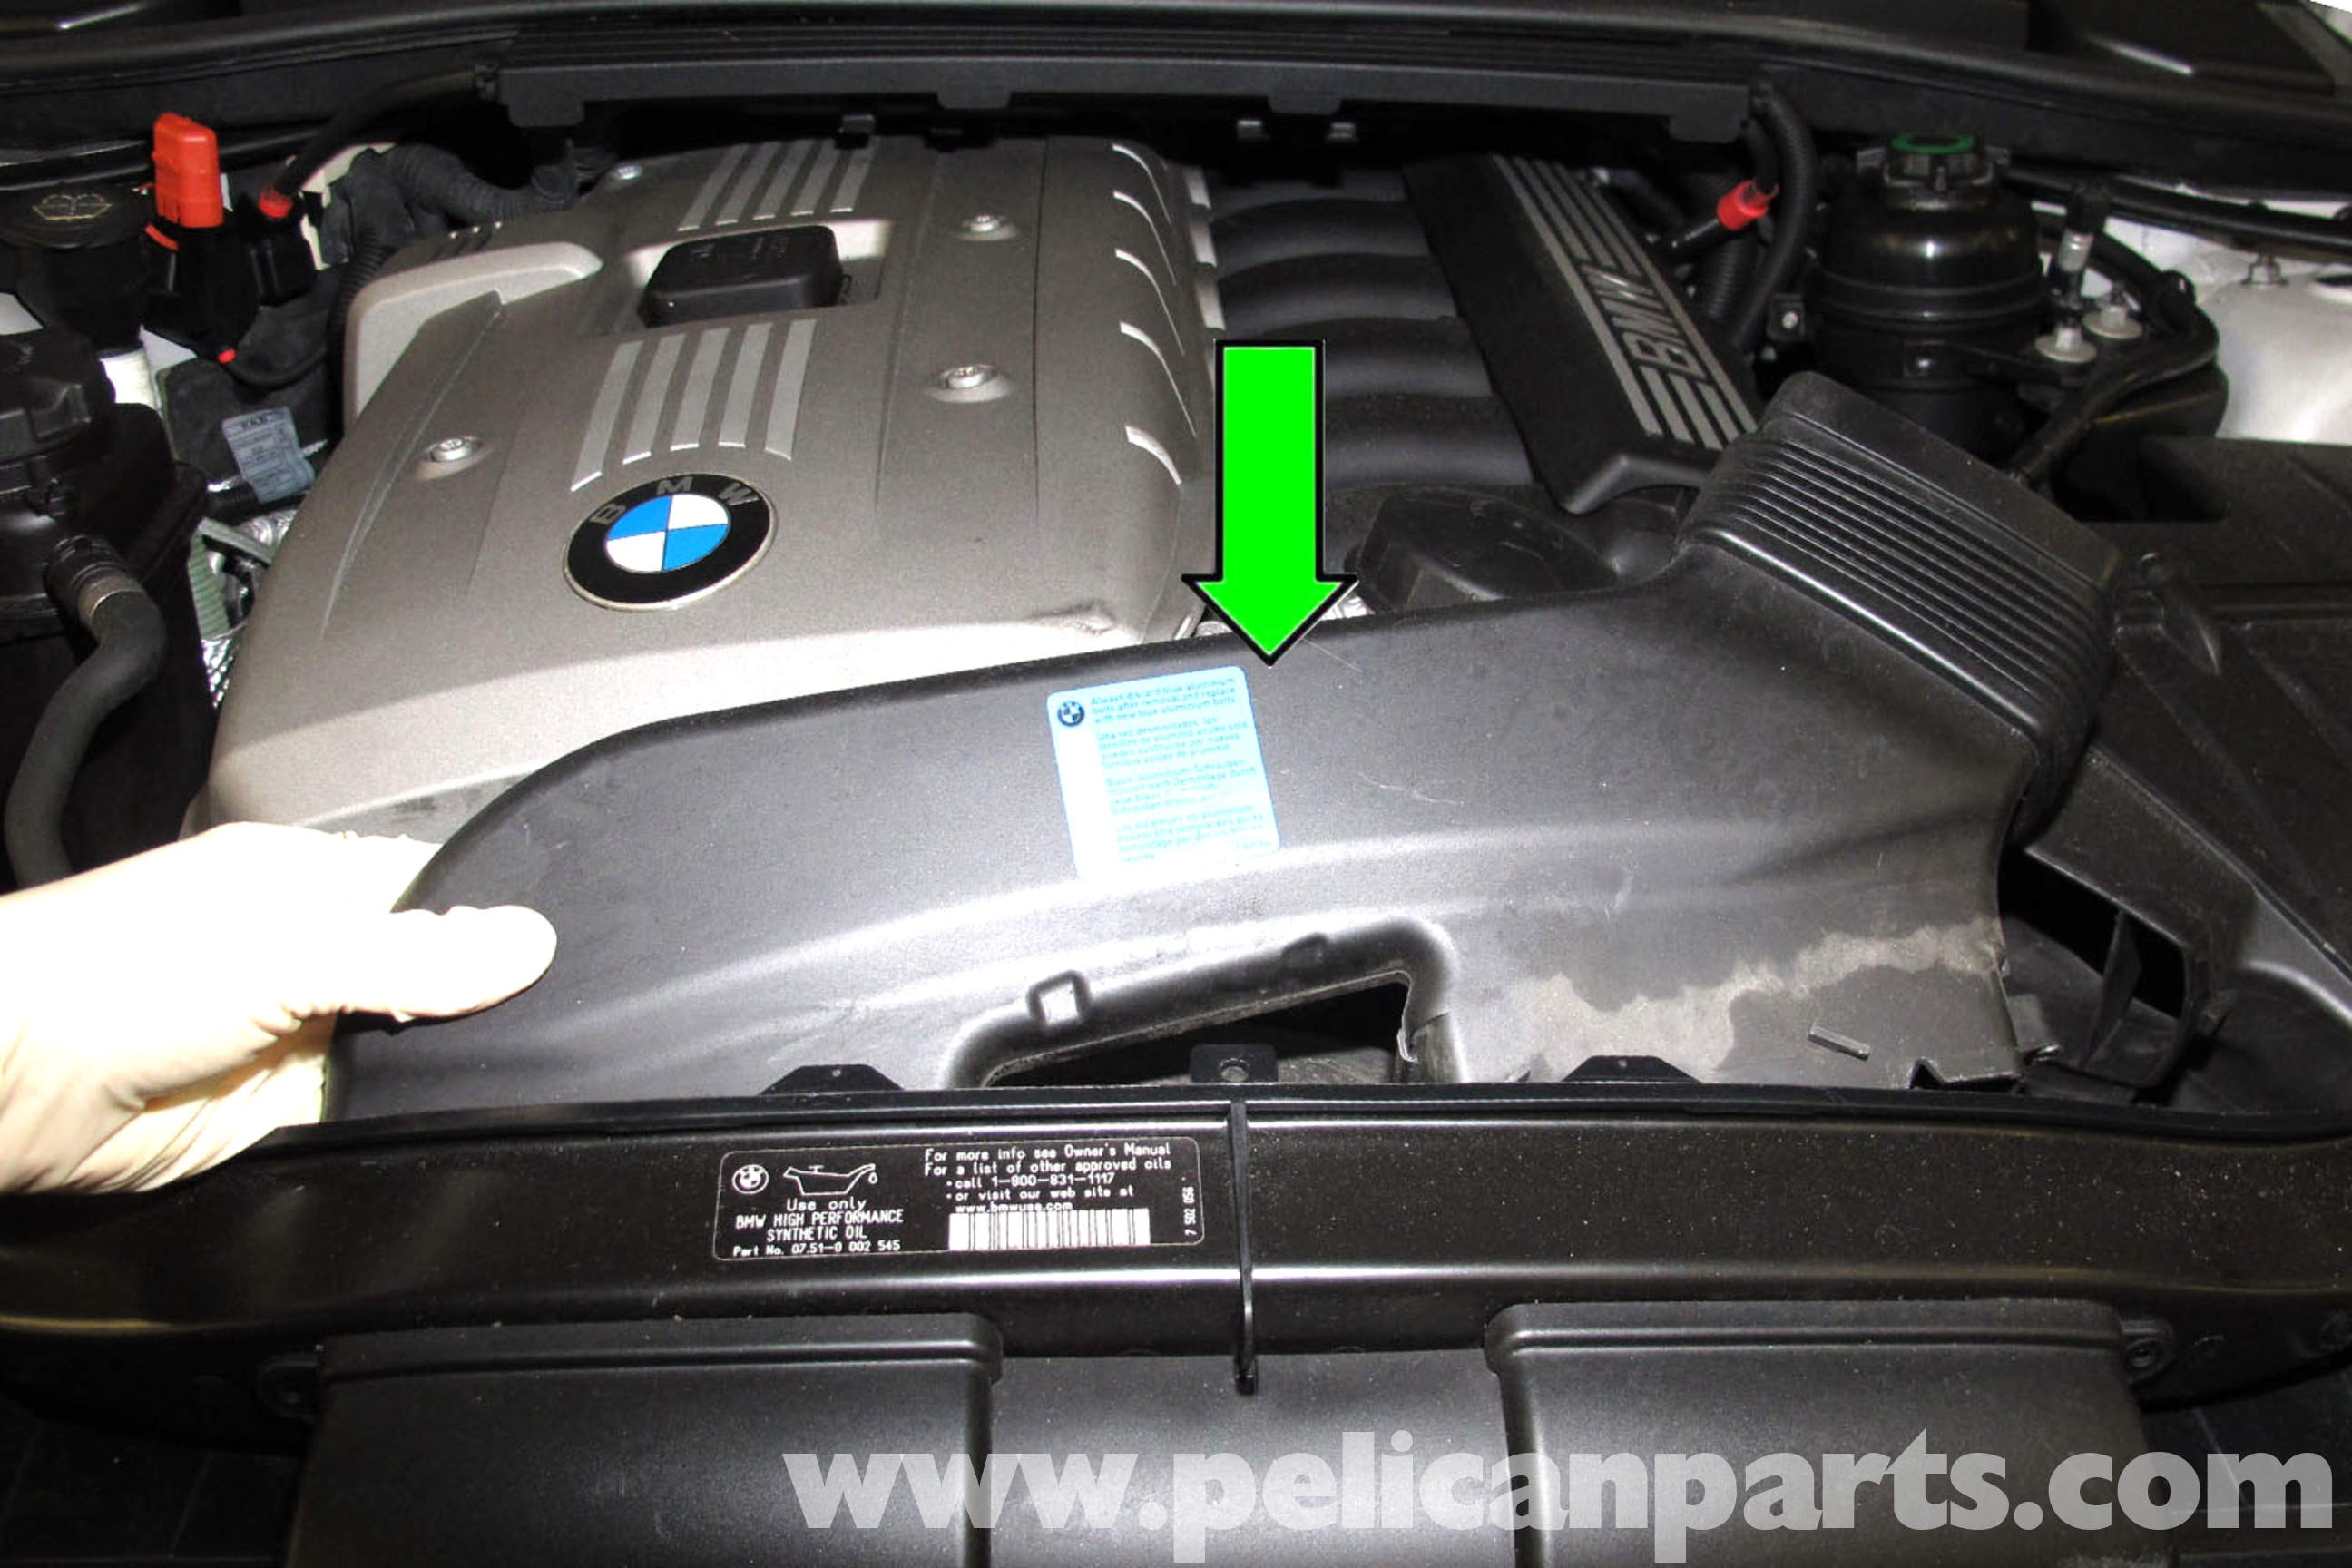 2006 bmw 530i engine diagram bmw e90 intake manifold replacement e91 e92 e93 of 2006 bmw 530i engine diagram 2006 bmw 550i engine diagram best wiring library